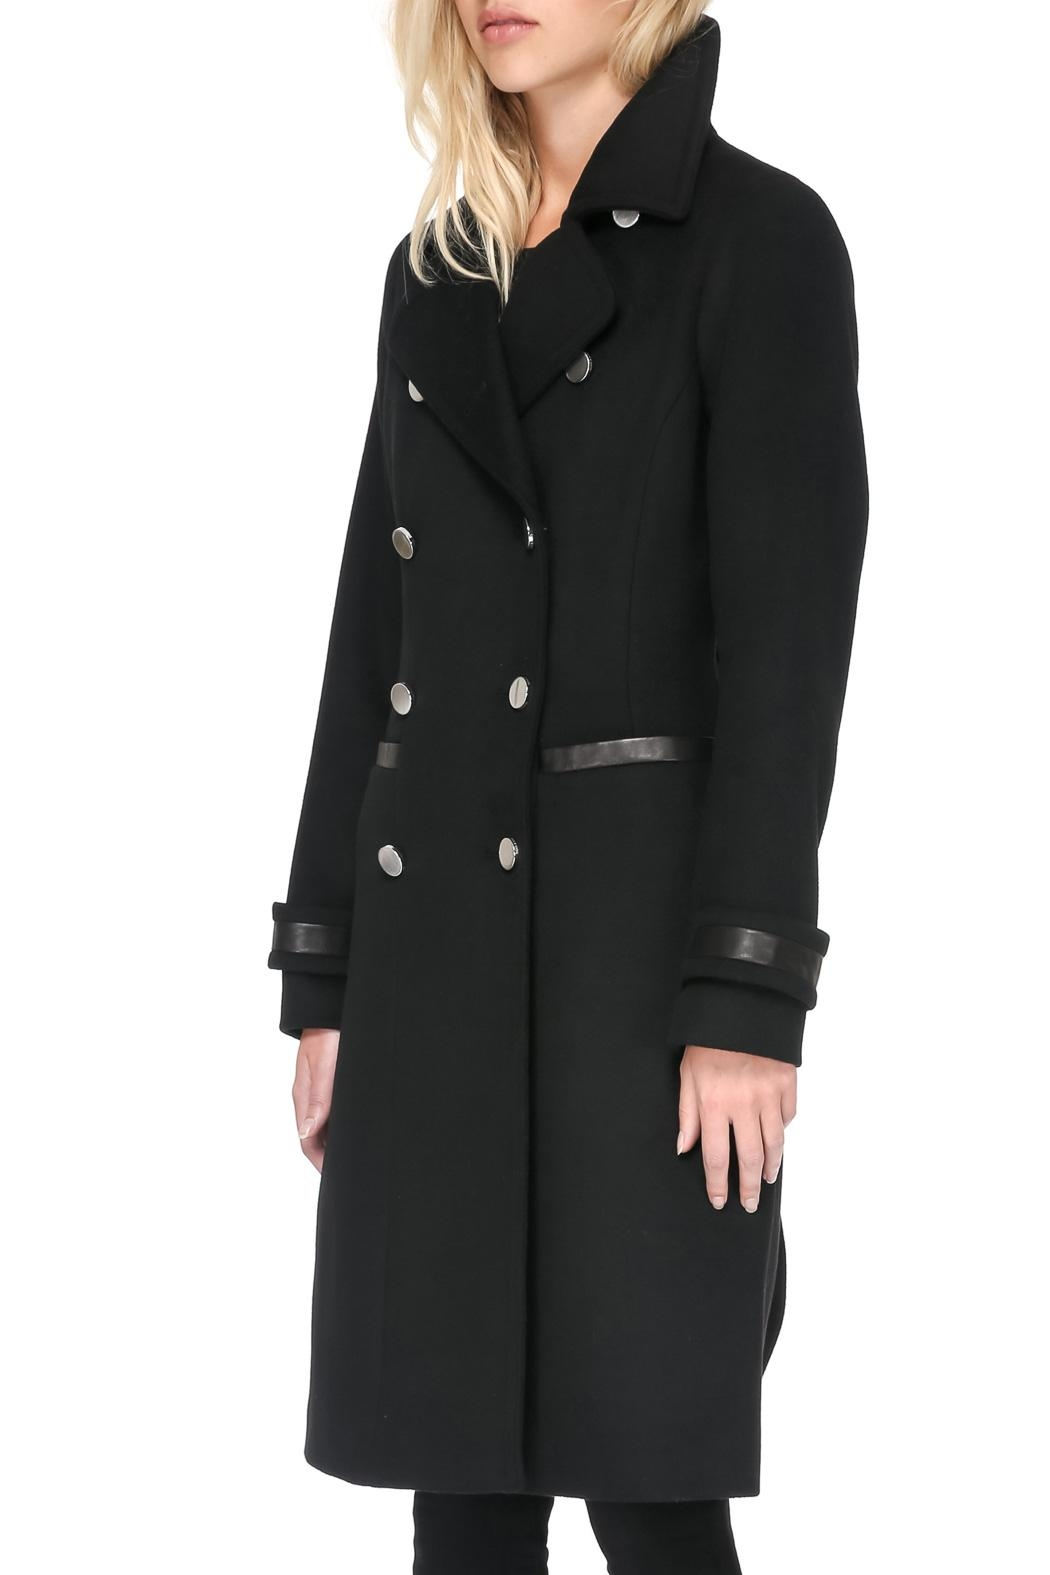 Soia & Kyo Julianna Wool Coat - Front Full Image